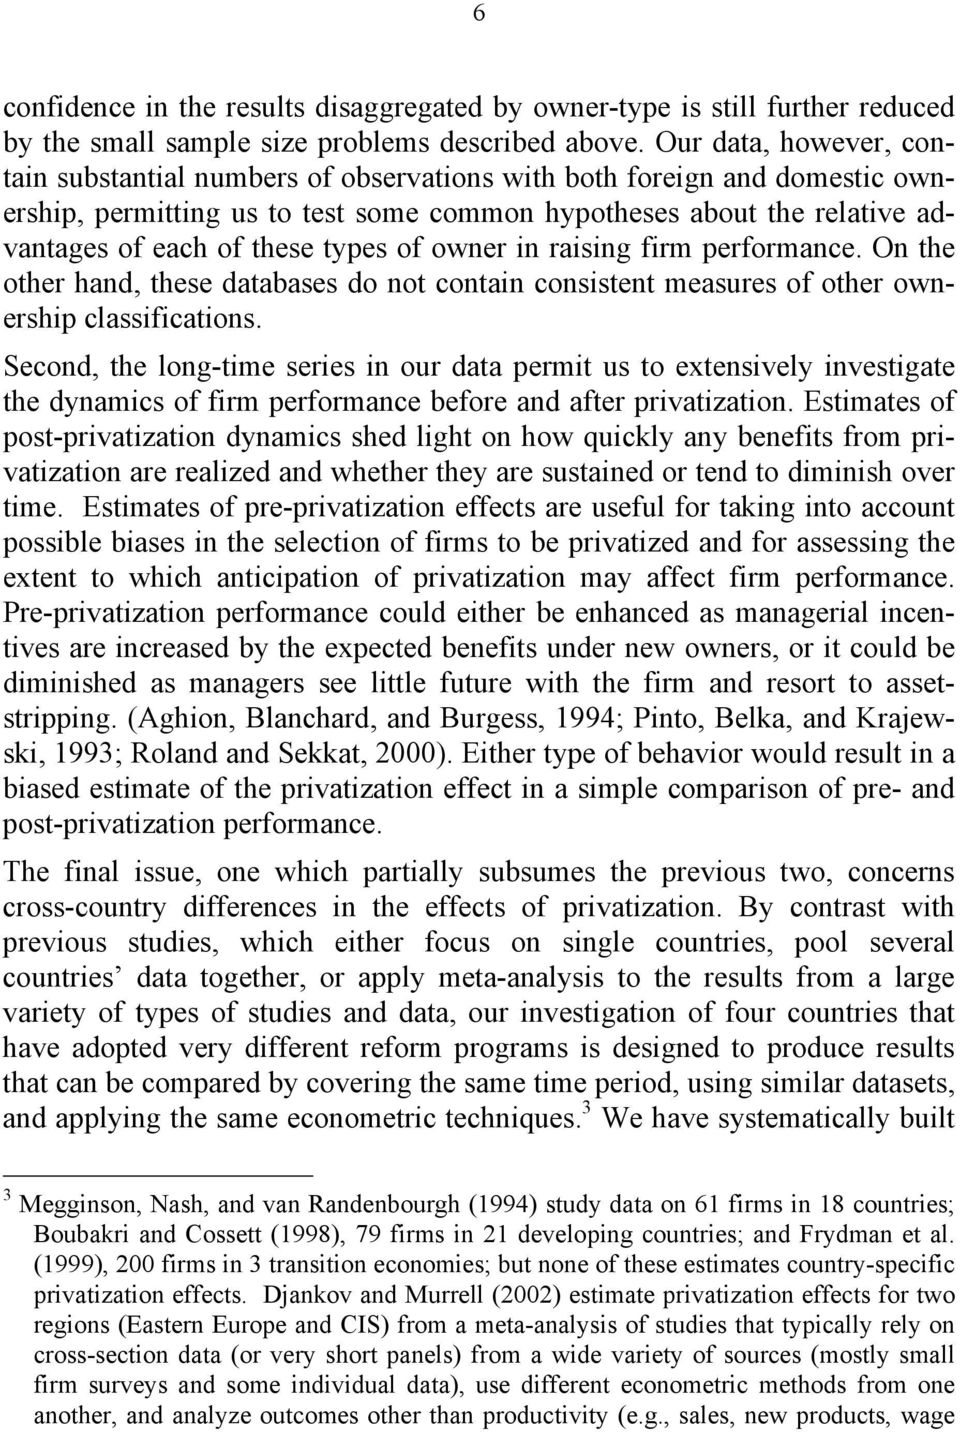 types of owner in raising firm performance. On the other hand, these databases do not contain consistent measures of other ownership classifications.